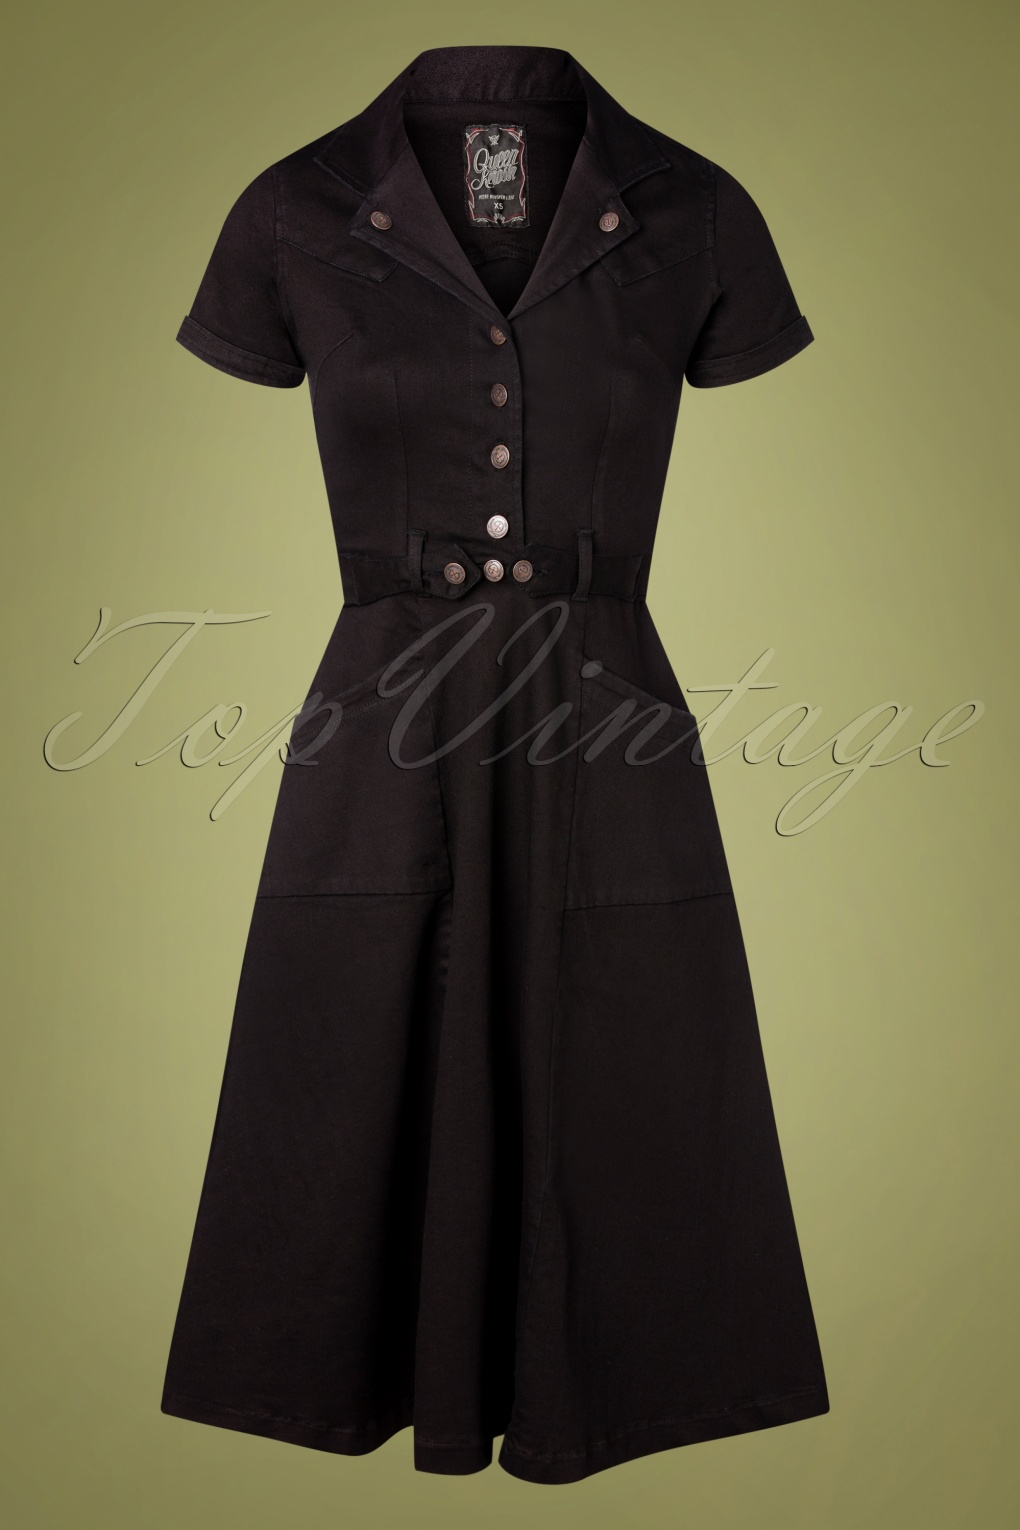 Vintage Shirtwaist Dress History 50s Workers Denim Swing Dress in Black £82.00 AT vintagedancer.com